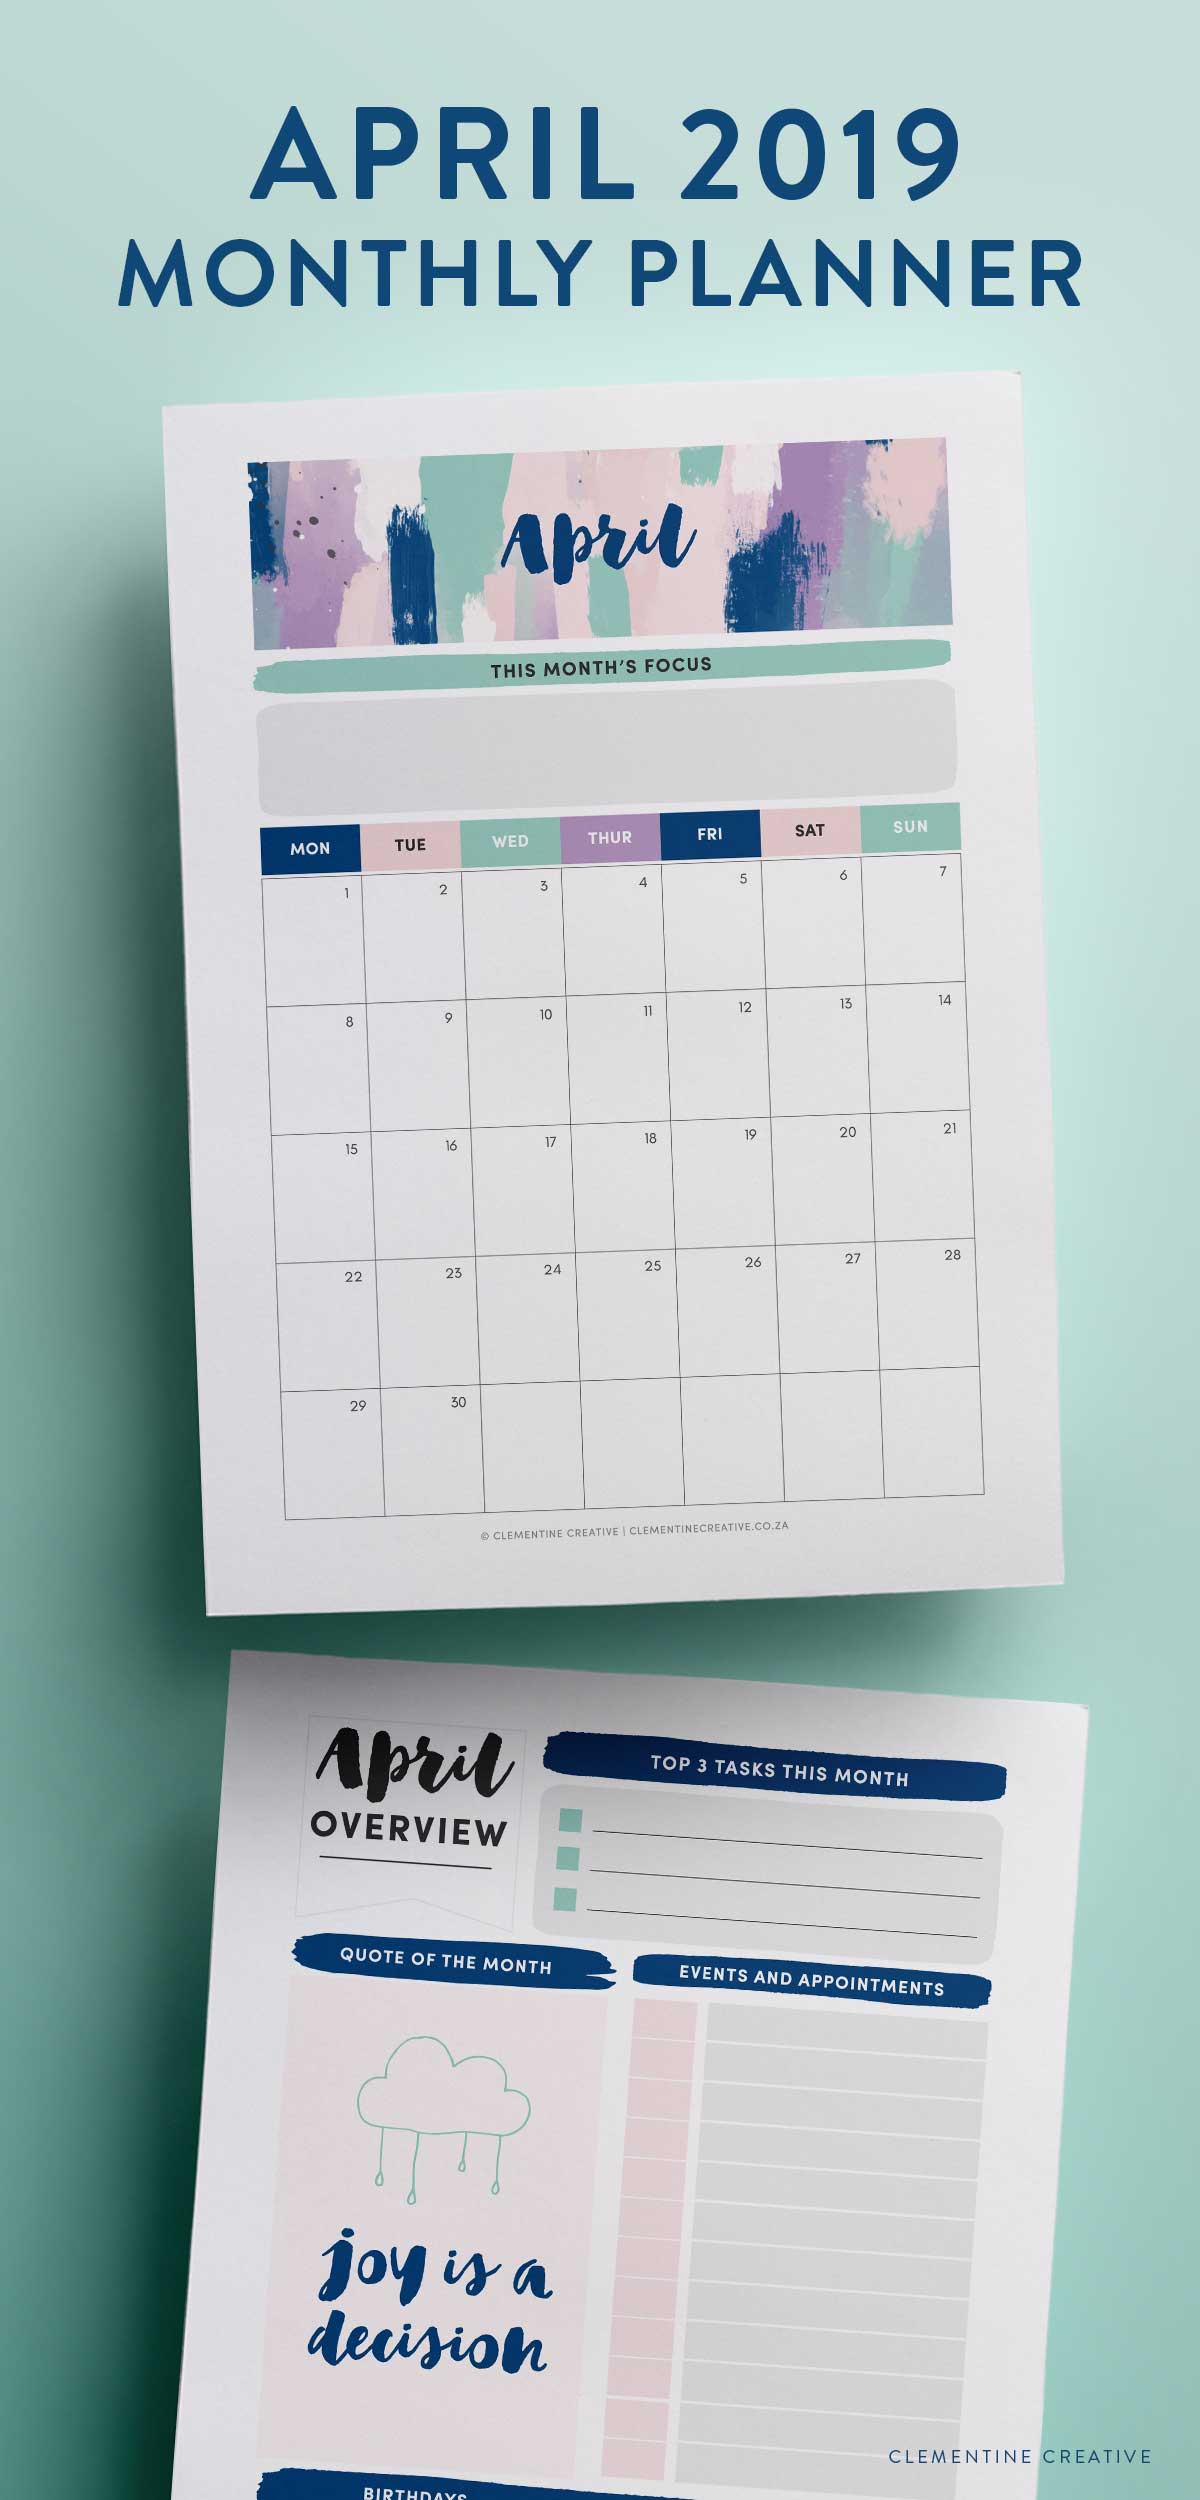 April 2019 printable calendar and monthly planner